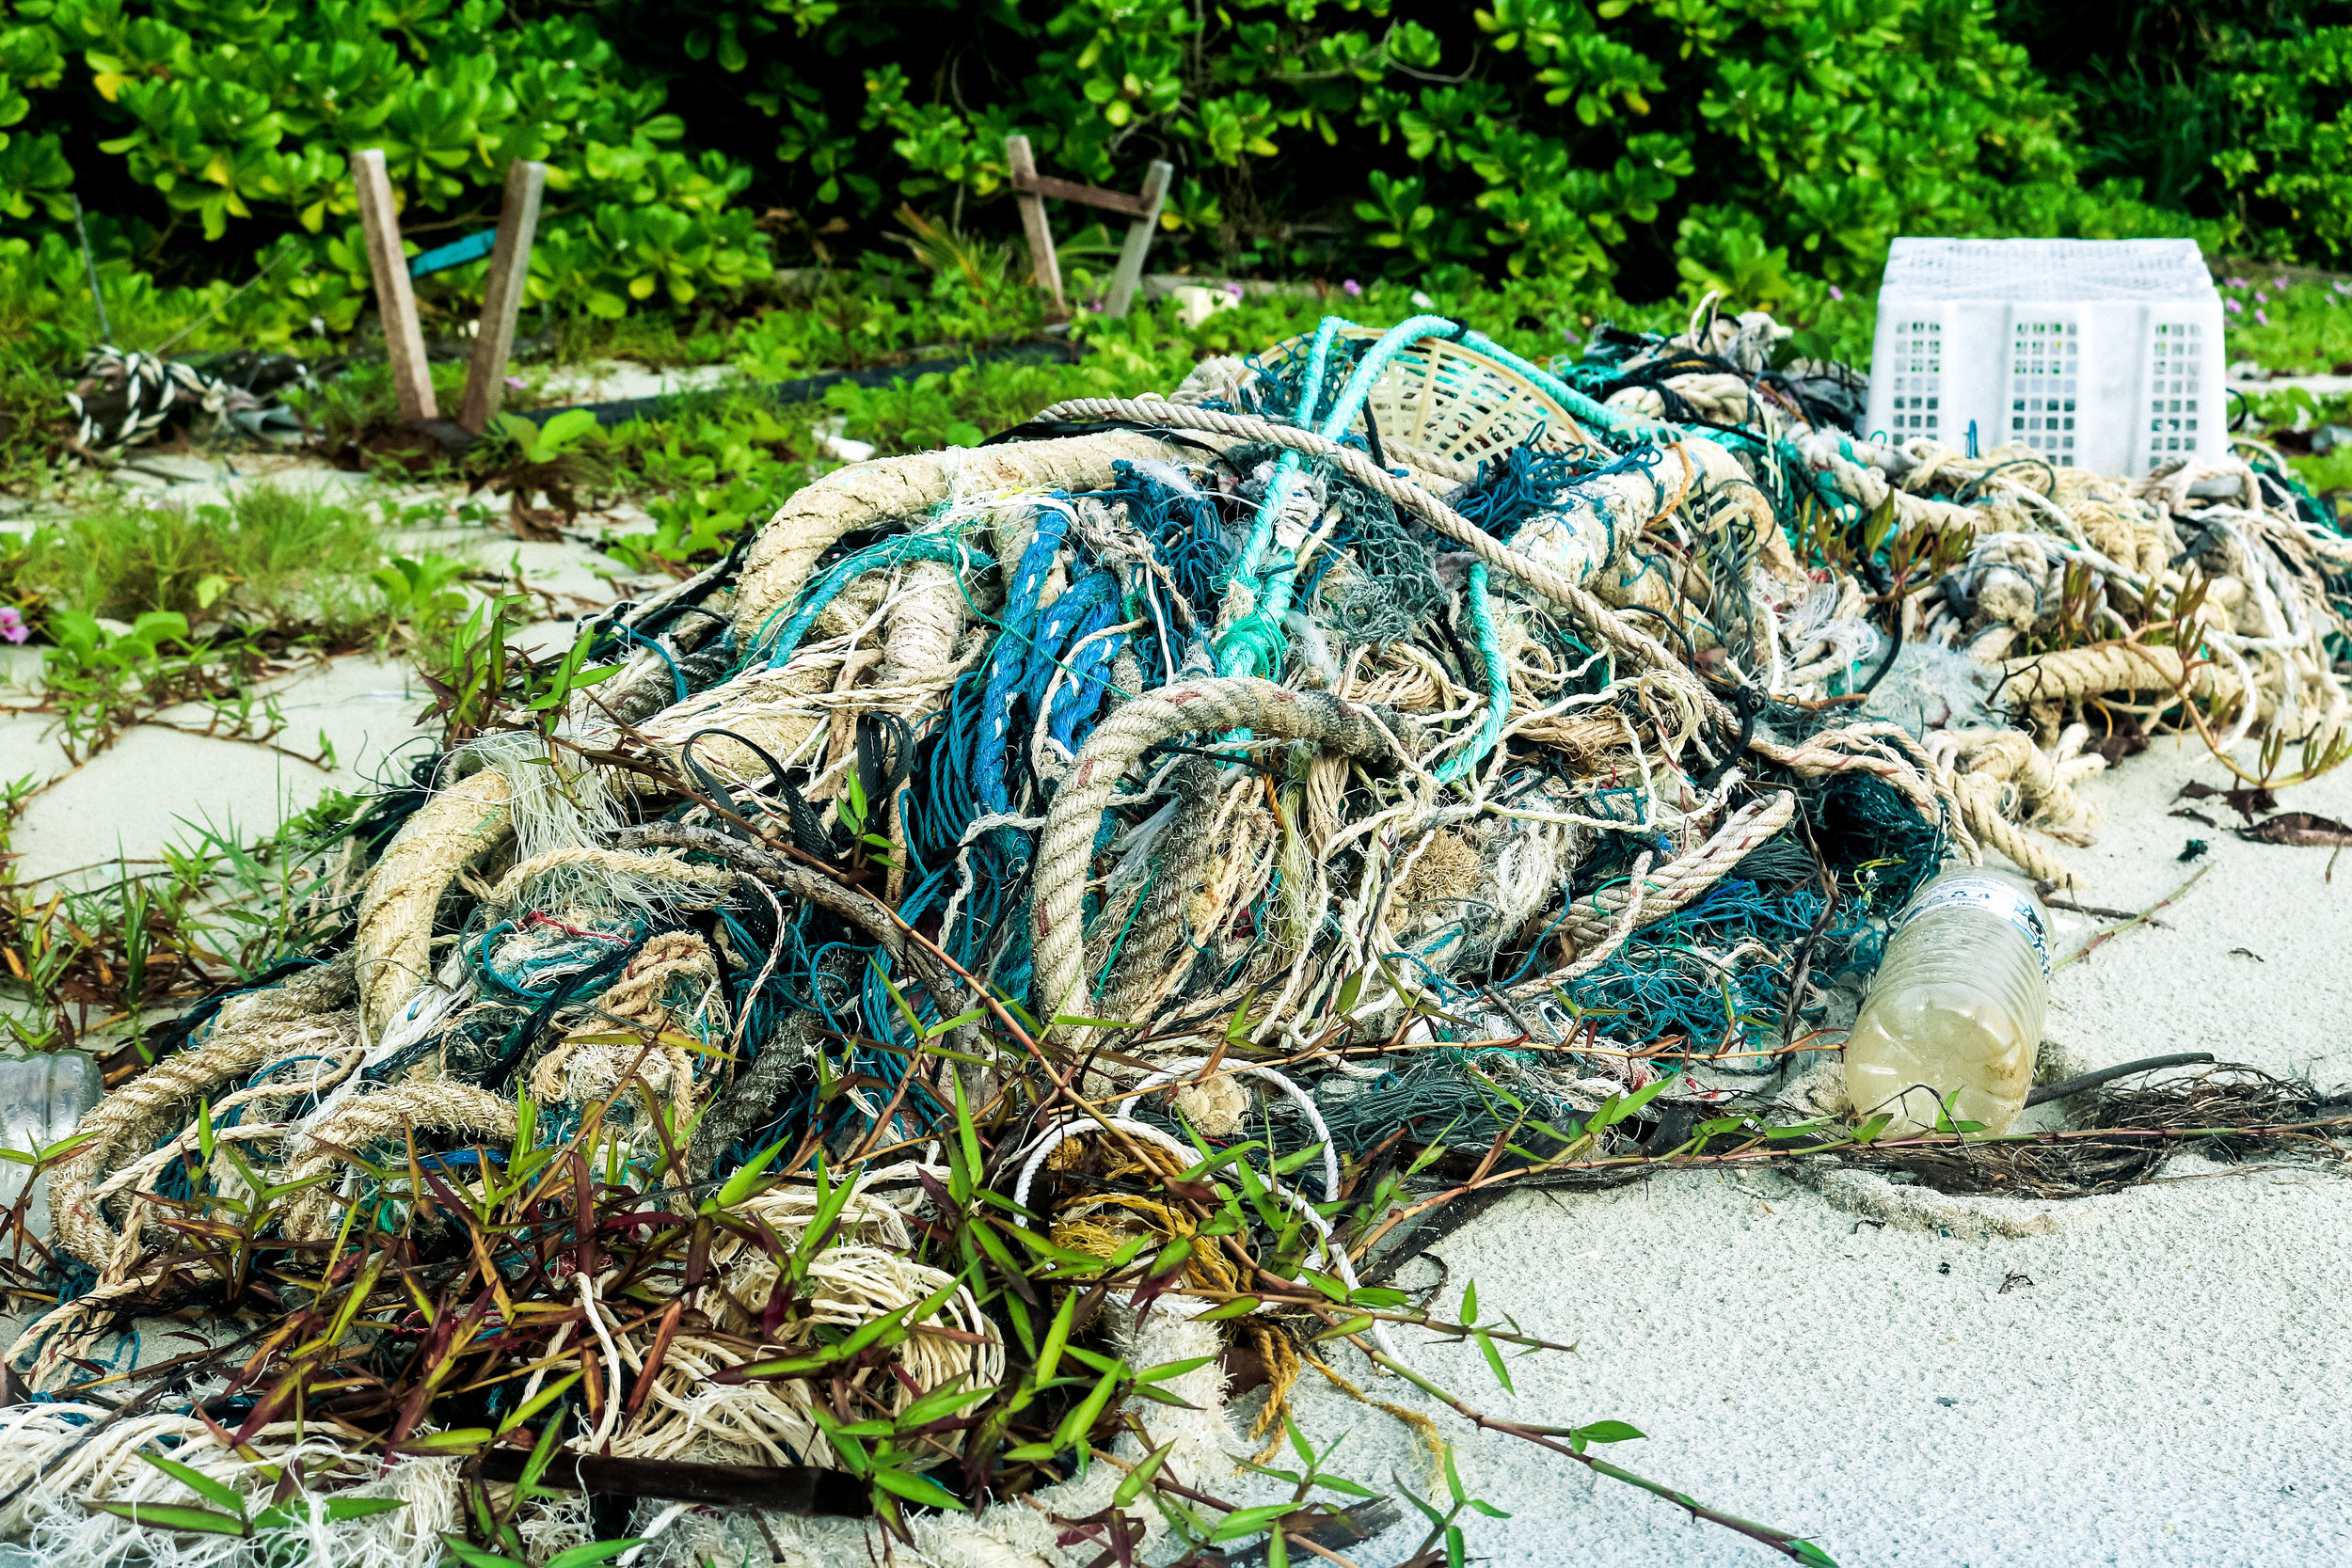 Ghost gear up close. Just a small portion of what was removed from the sea that day.